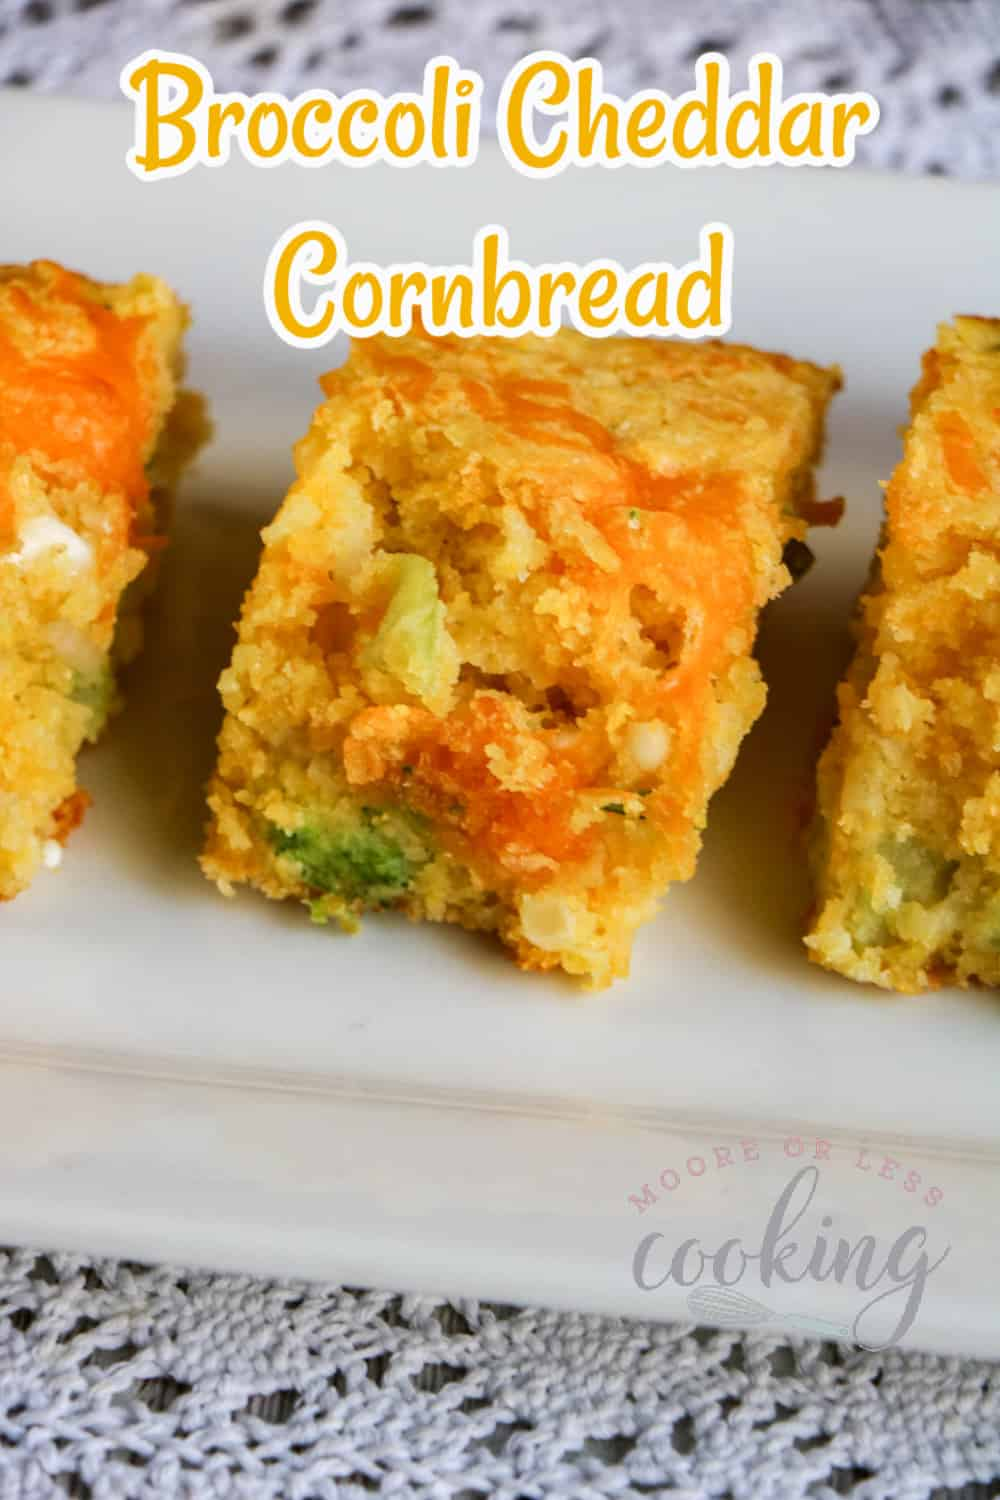 You'll love this savory and delicious recipe that takes the classic combination of broccoli and cheddar cheese and combines it with cornbread. This tasty Broccoli Cheddar Cornbread recipe is sure to become a family favorite. via @Mooreorlesscook